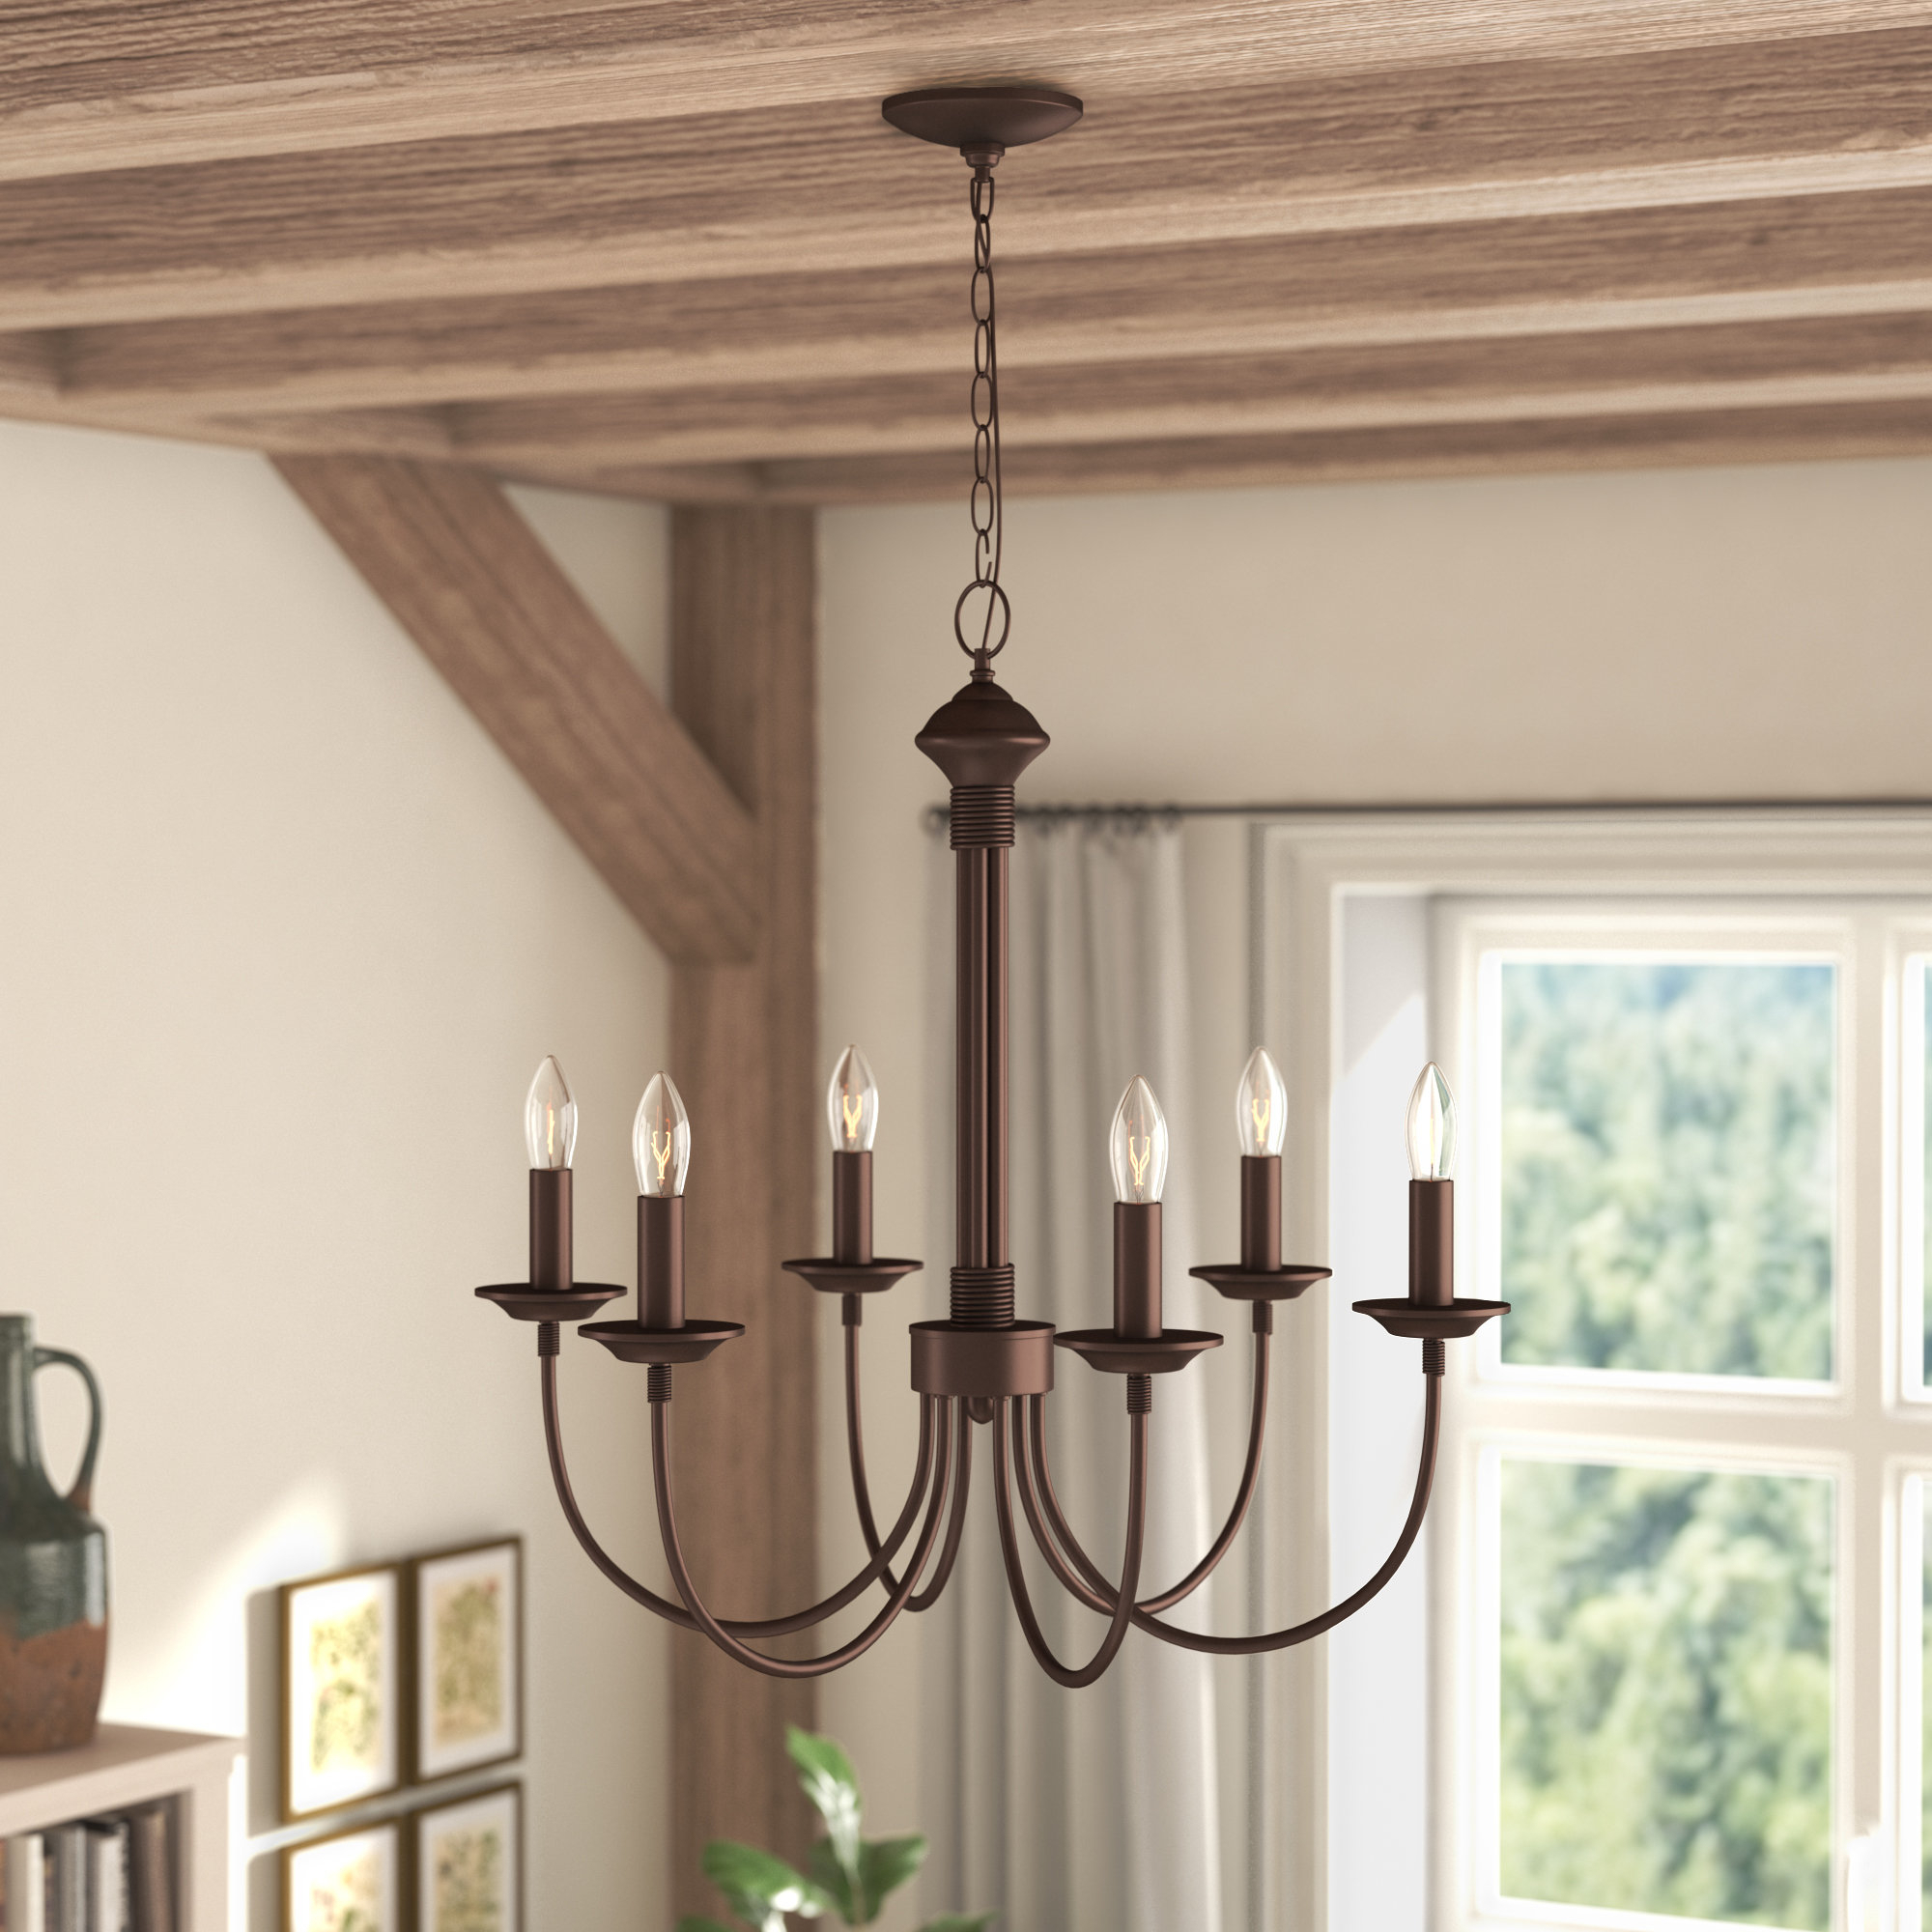 2019 Laurel Foundry Modern Farmhouse Shaylee 6 Light Candle Style Chandelier For Shaylee 8 Light Candle Style Chandeliers (View 1 of 25)